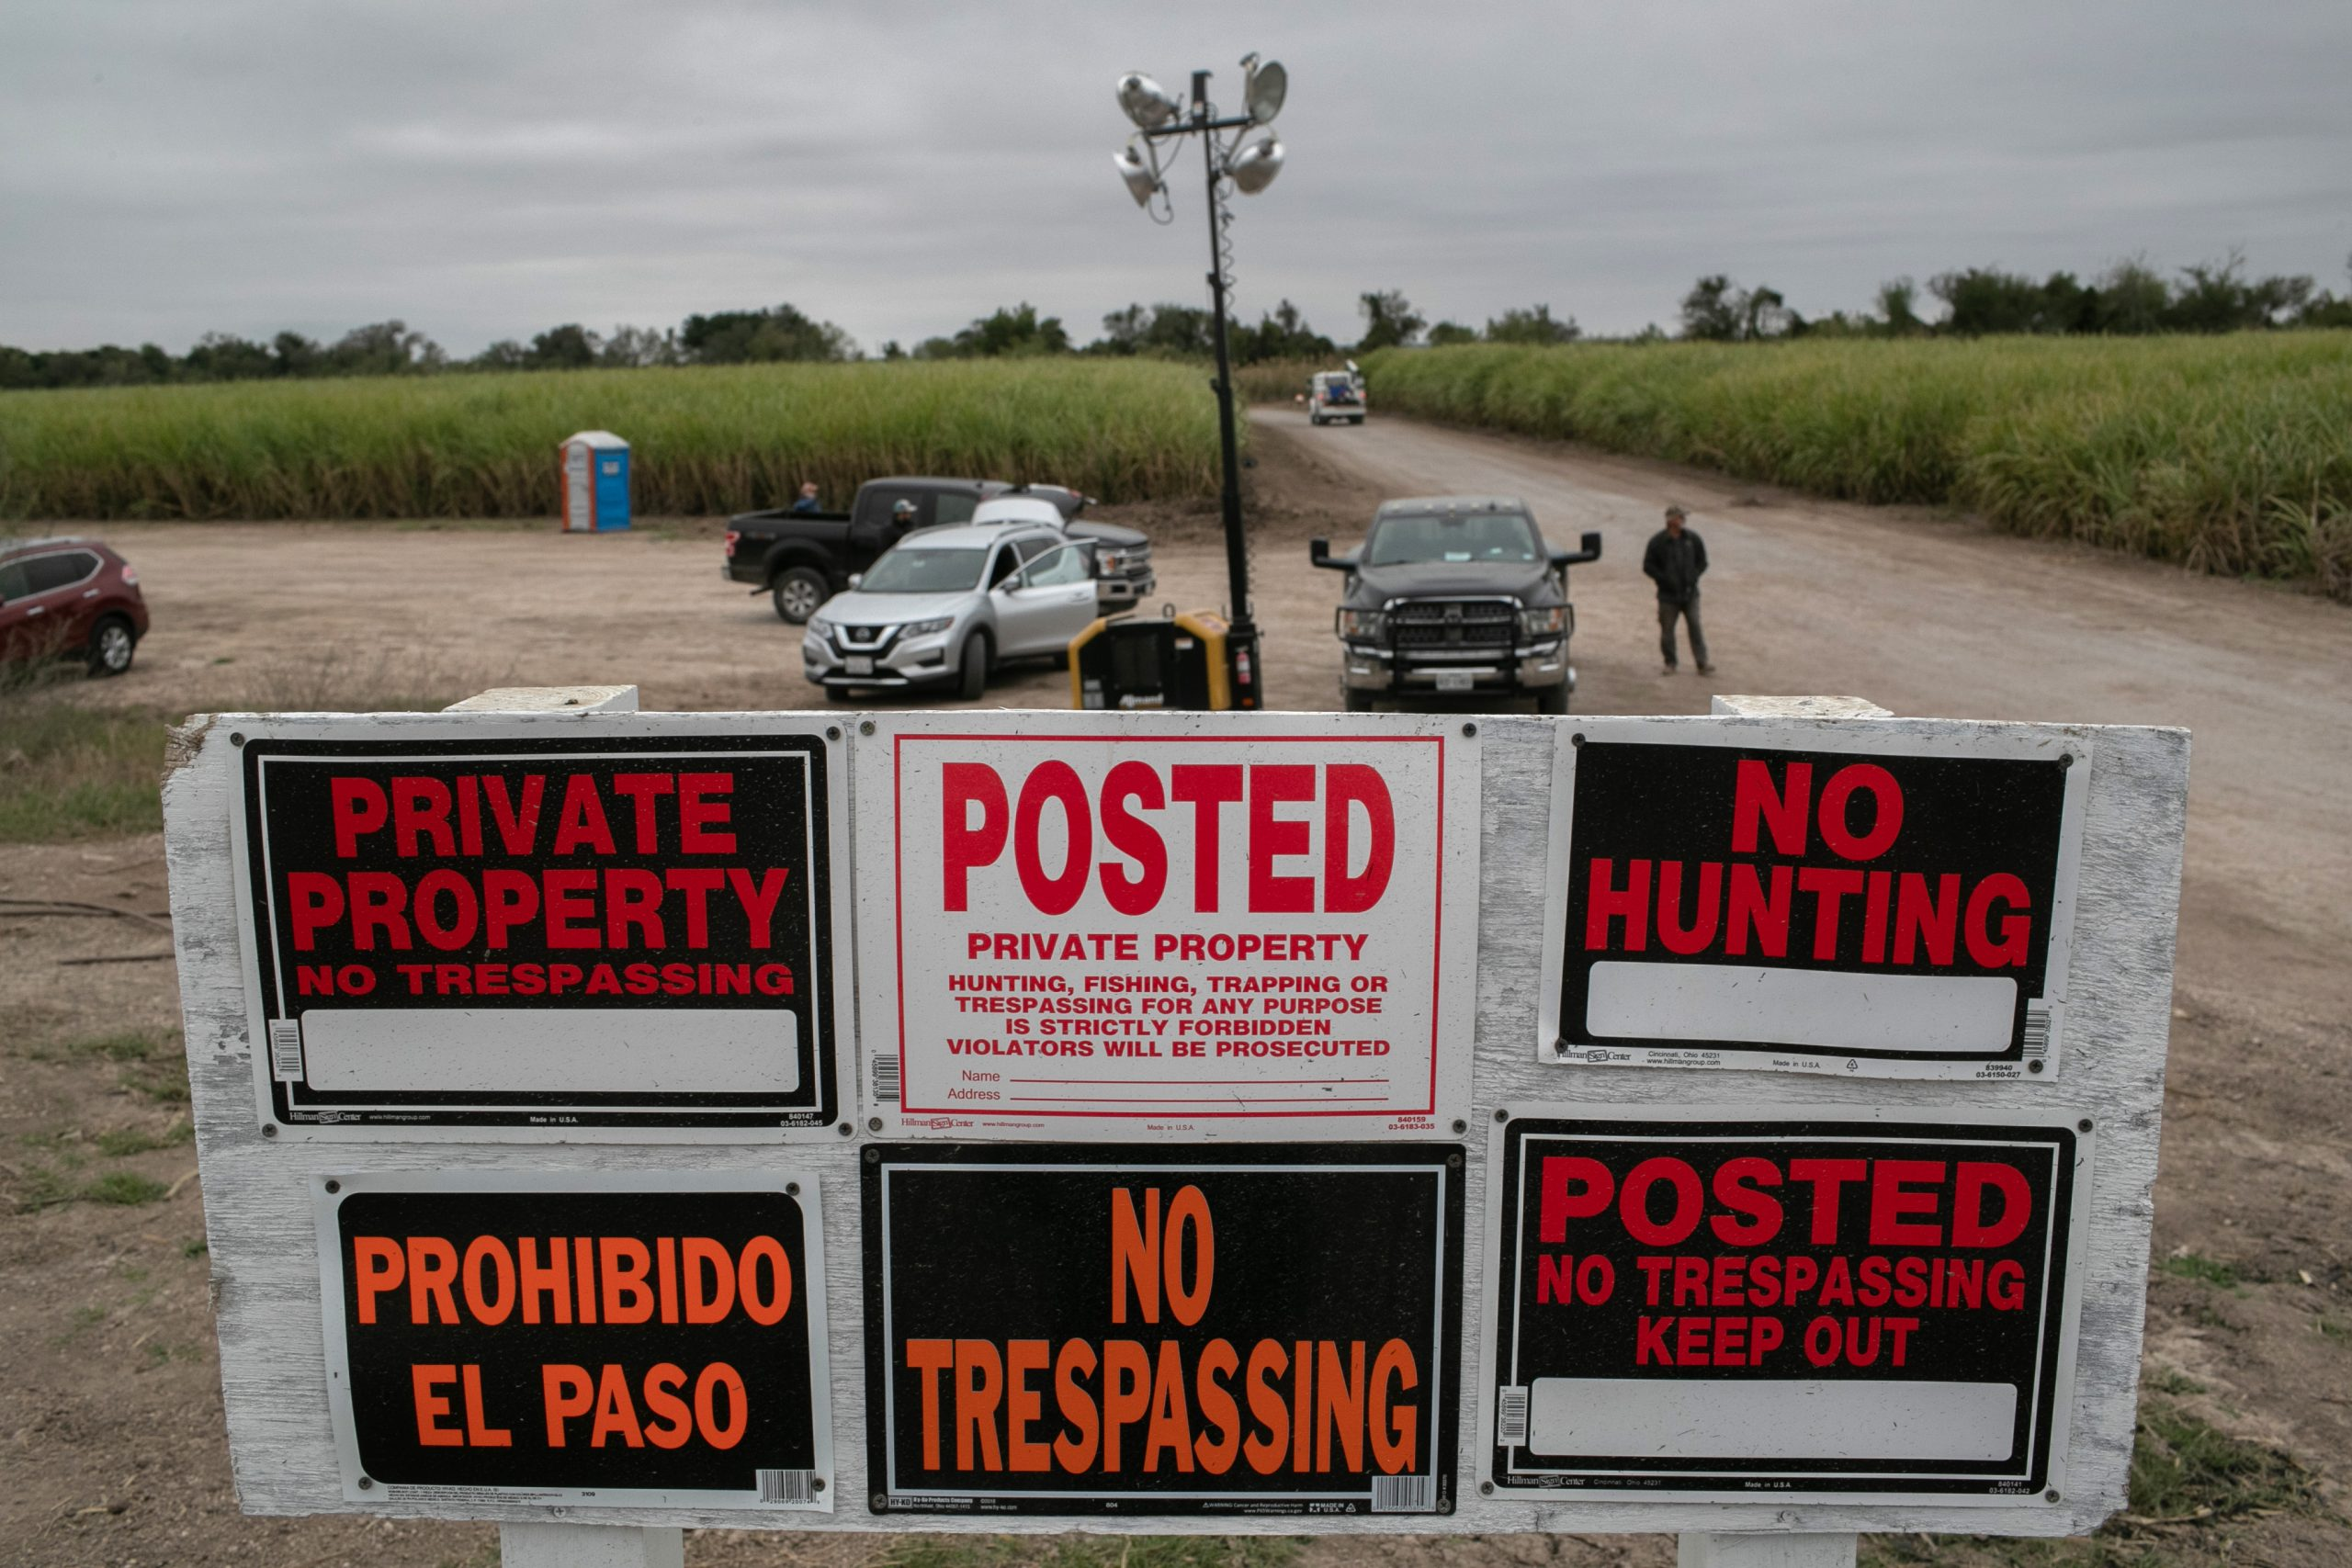 Federal authorities indicted organizers for the We Build the Wall campaign for allegedly lying about not taking personal payments. The hardline immigration group funded construction of a wall on private land along the Rio Grande. (Dec. 11, 2019, photo by John Moore/Getty Images)